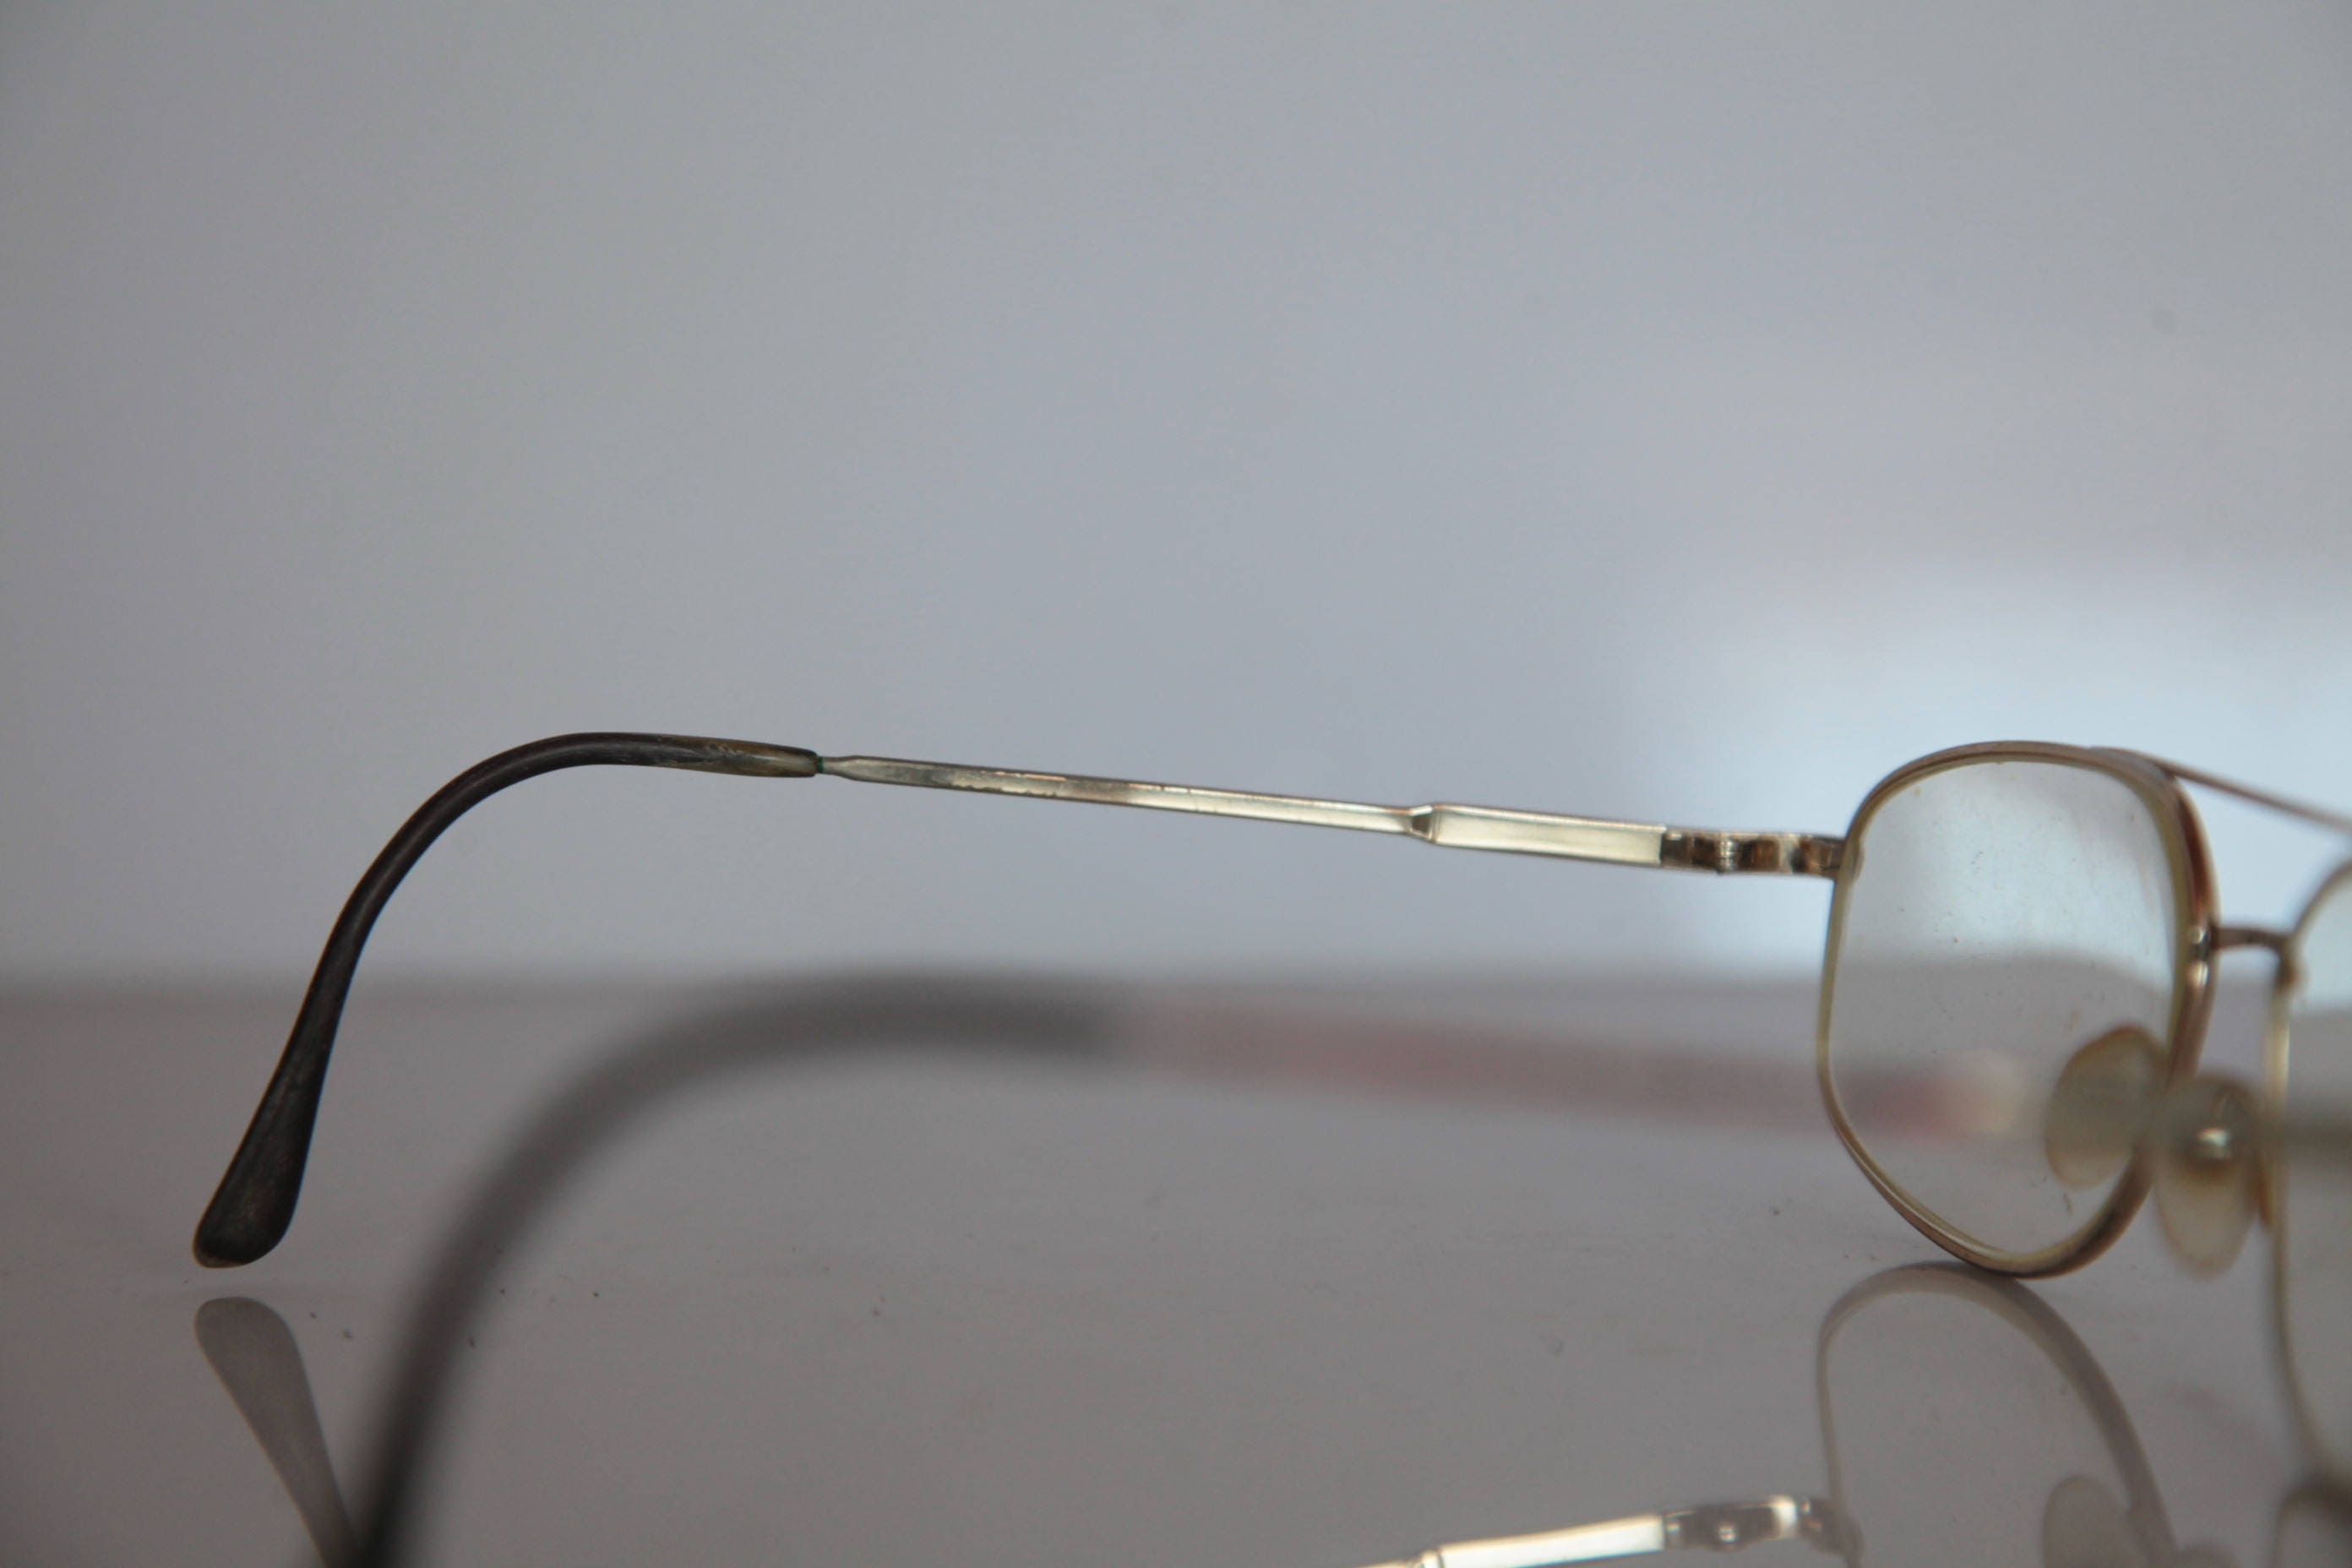 eyewear industry in germany The global eyewear market size was valued at usd 10266 billion in 2015 the increasing dependence on electronic gadgets such as mobile phones, television, and computers has led to eyesight problems resulting in the purchase of more eyewear products.